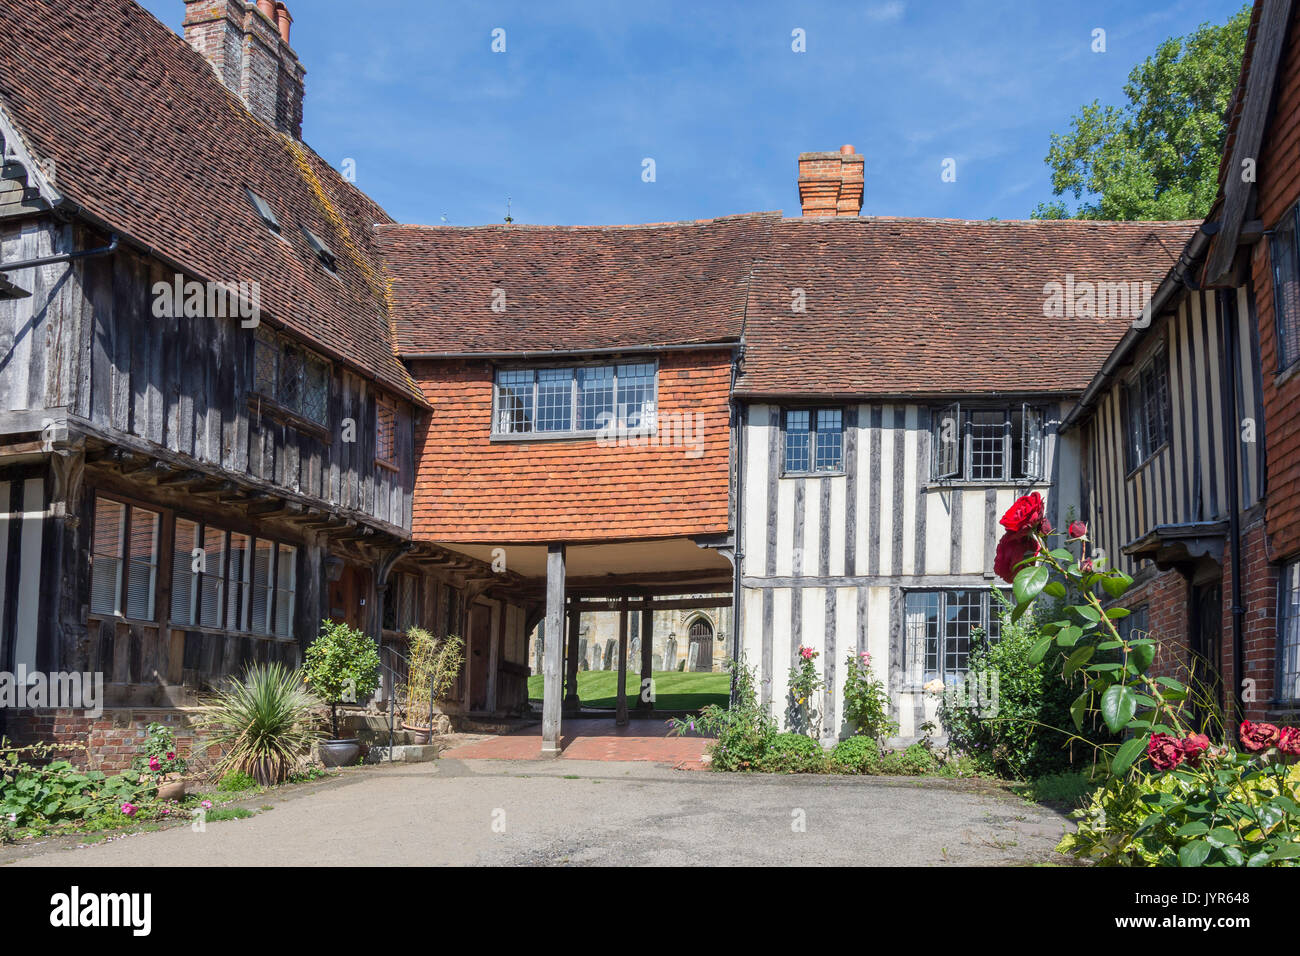 Timber-framed courtyard in front of St John the Baptist Church, Rogues Hill, Penshurst, Kent, England, United Kingdom - Stock Image